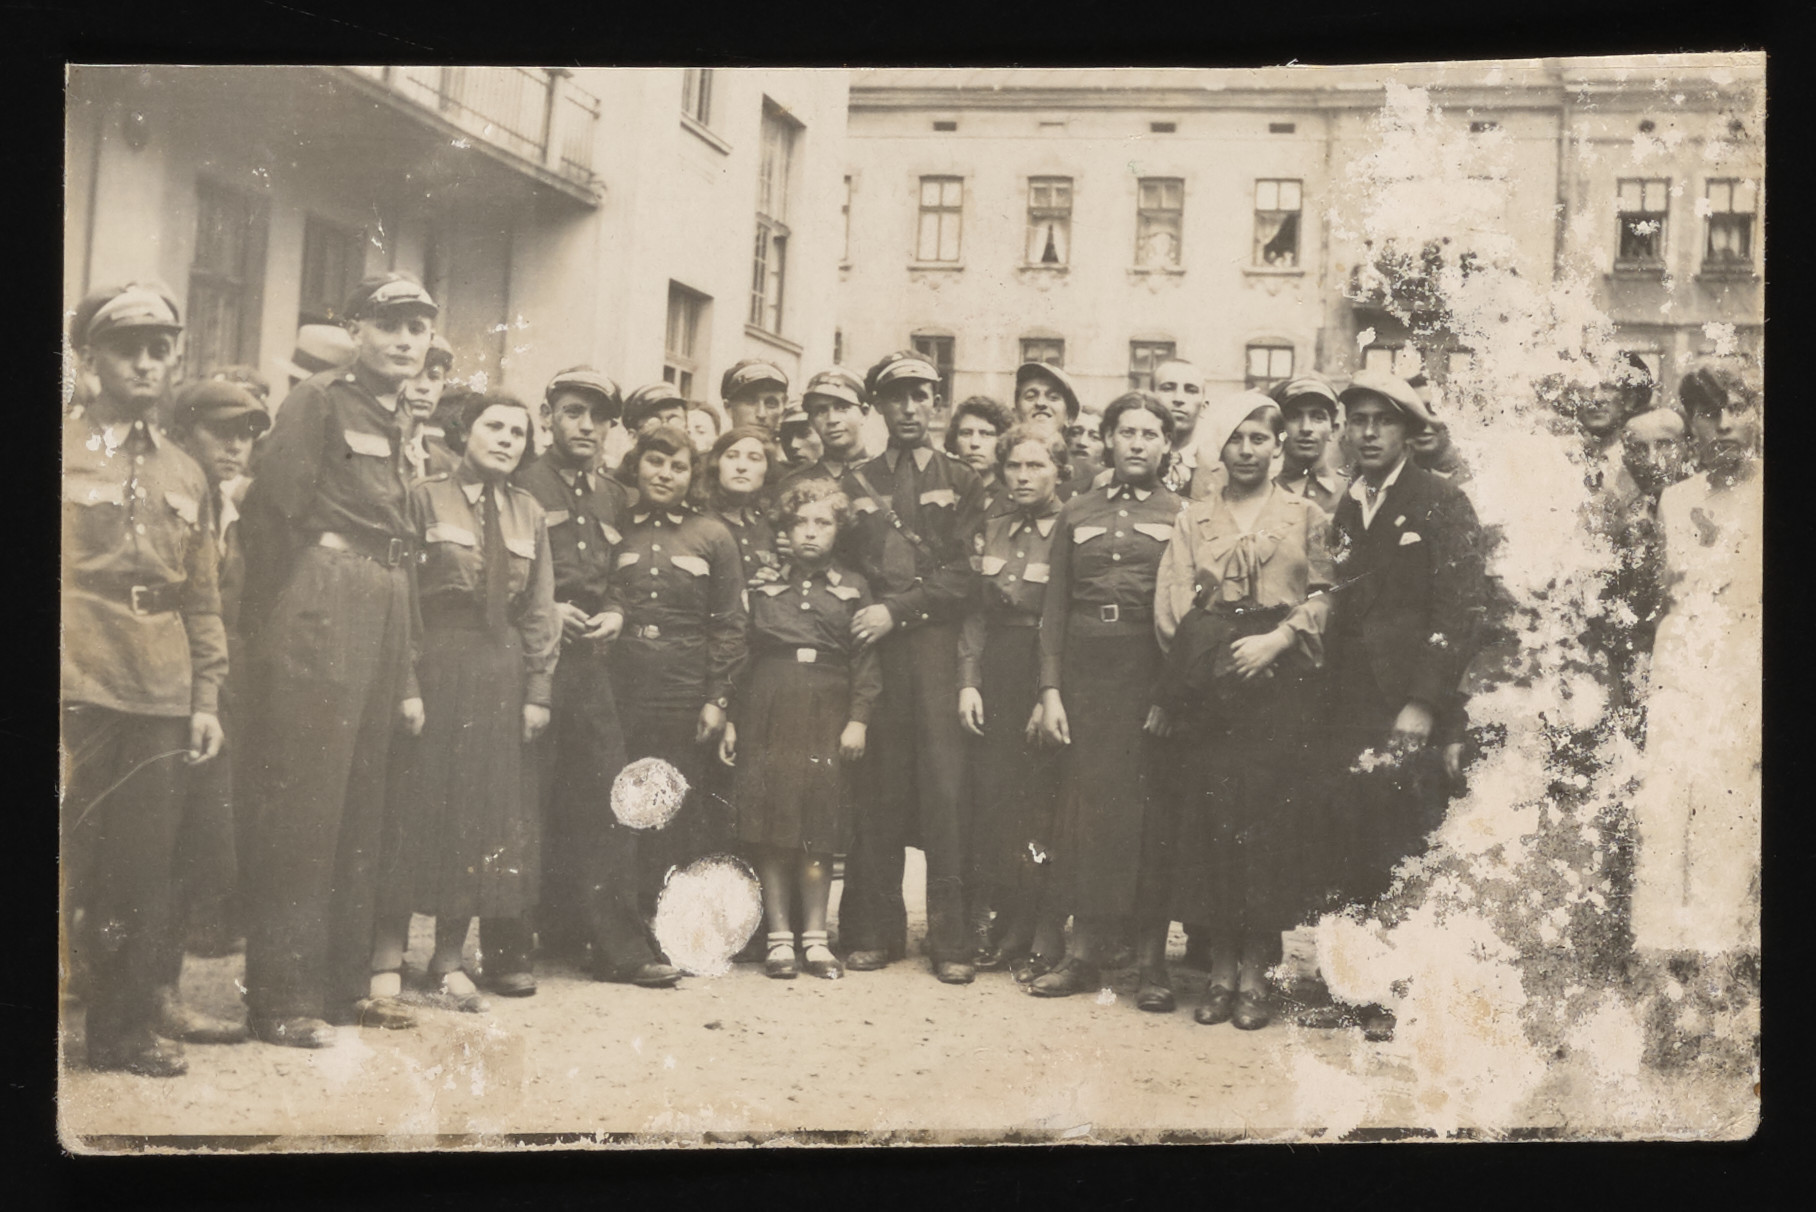 Group portrait of members of the Betar Zionist  youth organization in Kolbuszowa.